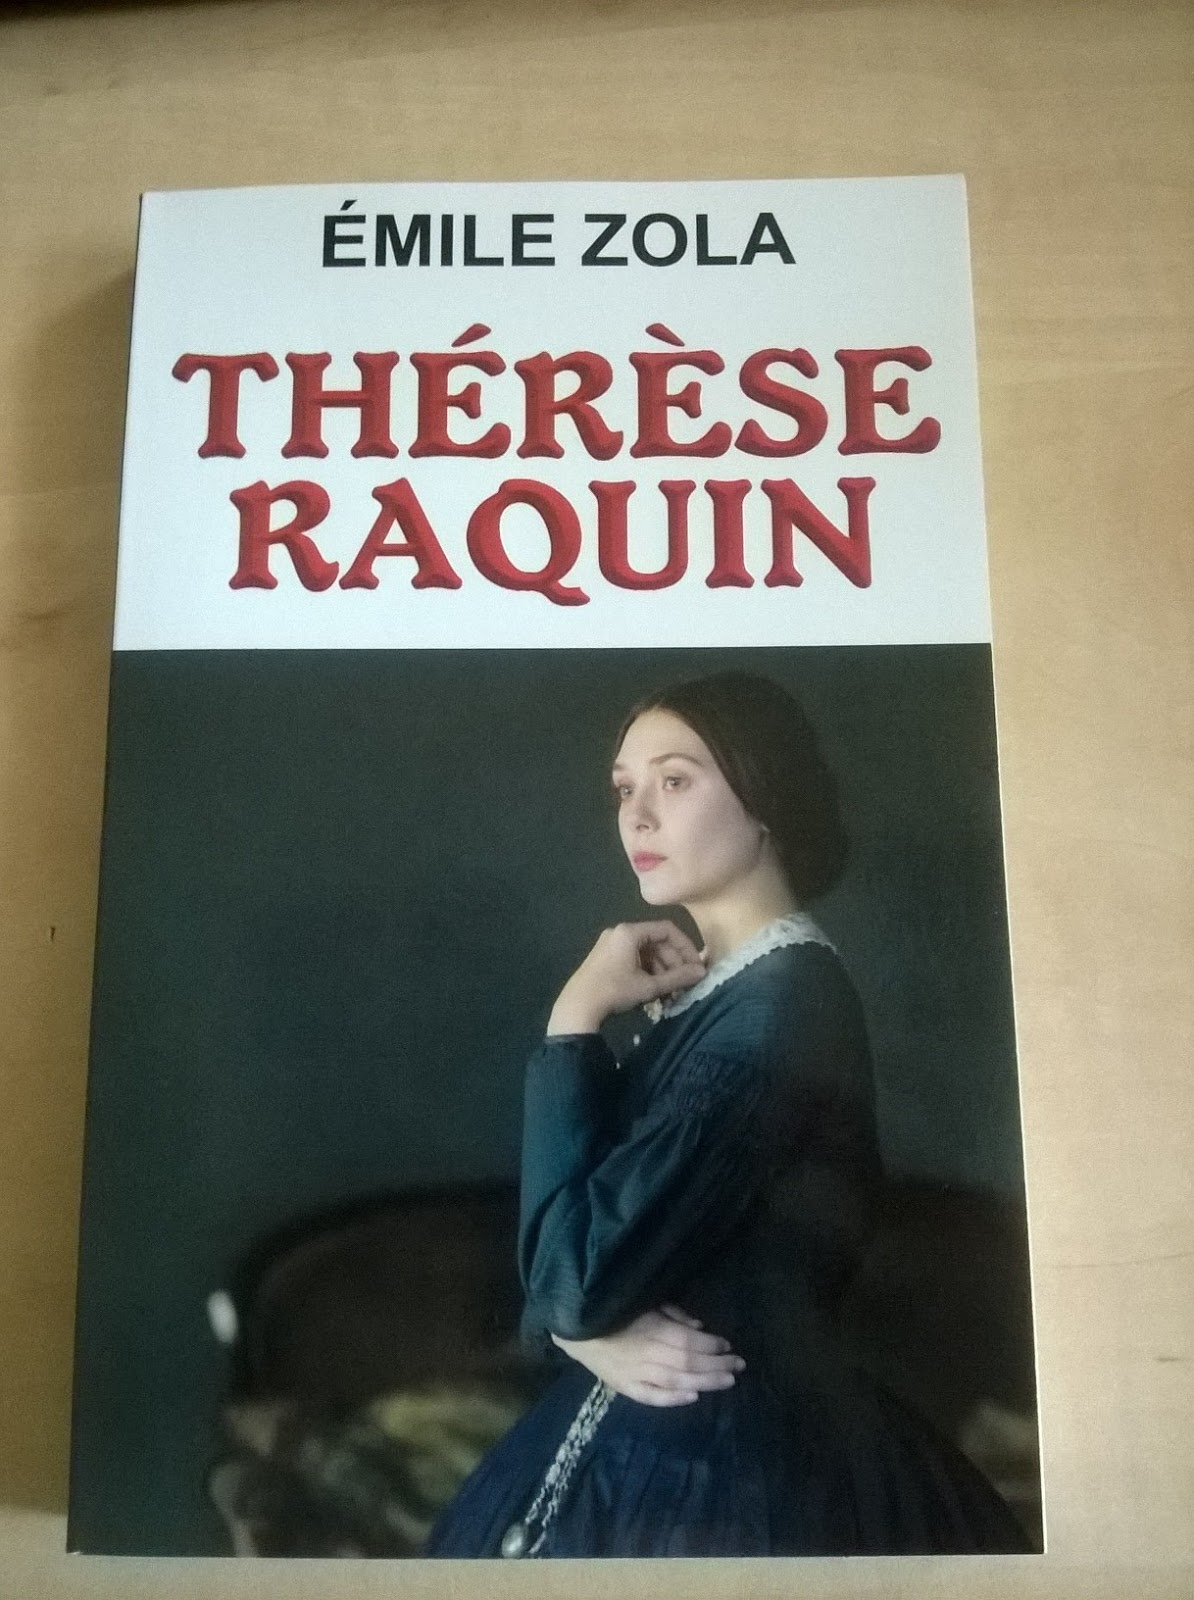 theresa raquin Thérèse raquin [teʁɛz ʁakɛ̃] is an 1868 novel by french writer émile zola, first  published in serial form in the literary magazine l'artiste in 1867 it was zola's.